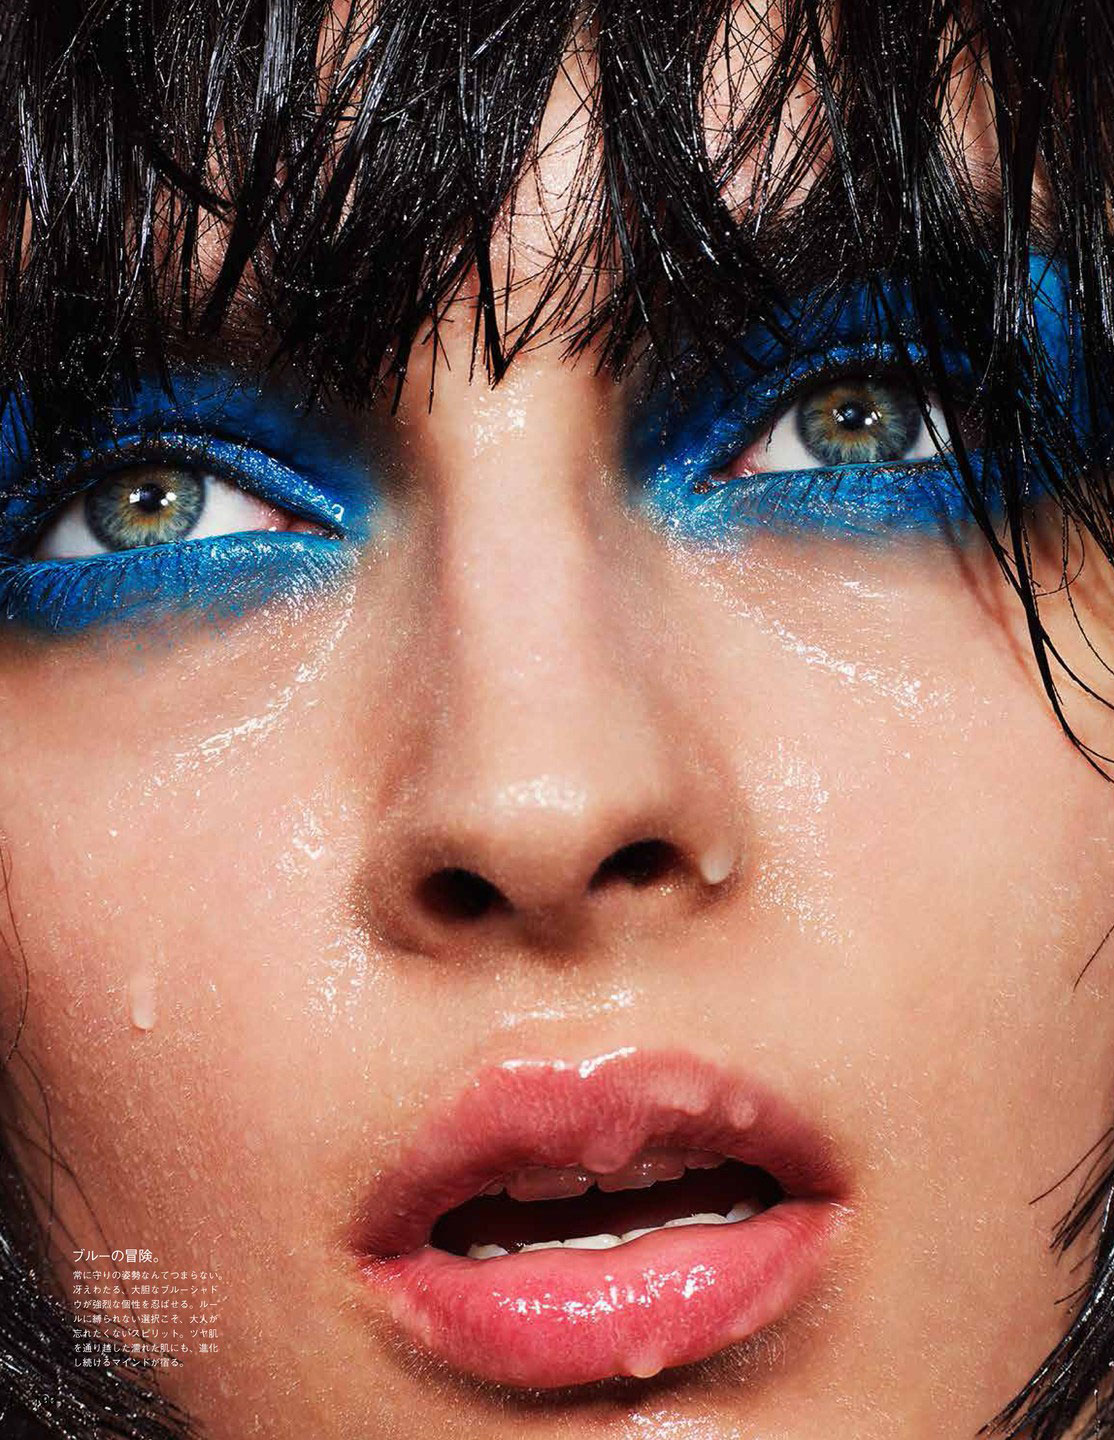 Daga-Ziober-VOGUE-JAPAN-BEAUTY-06